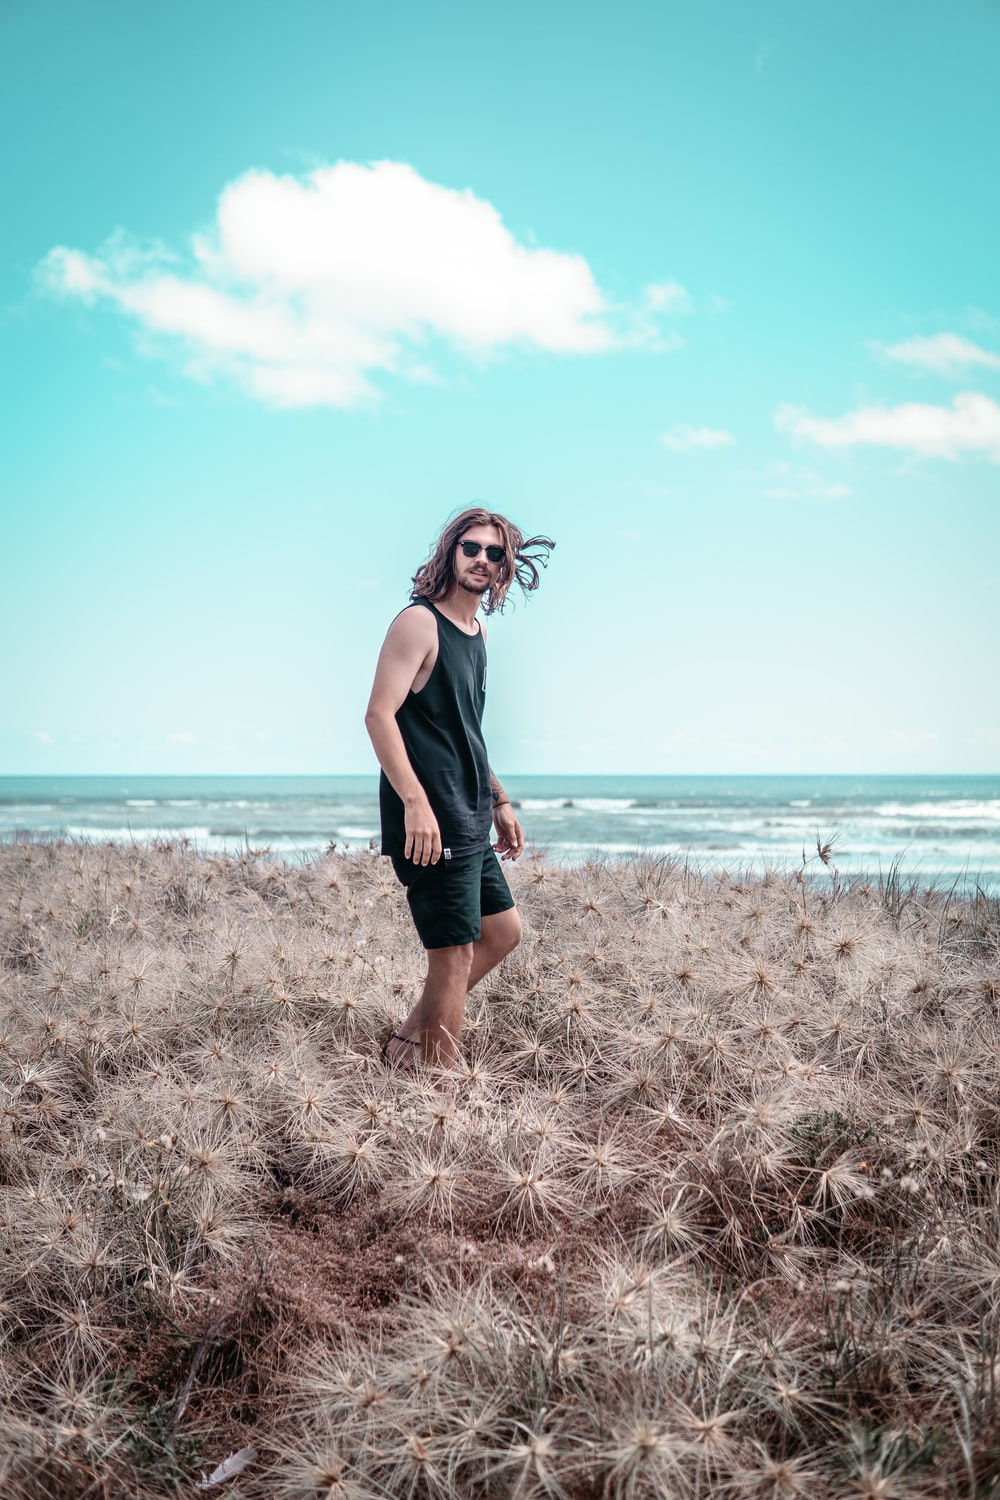 man in black tank top and black shorts standing outdoors